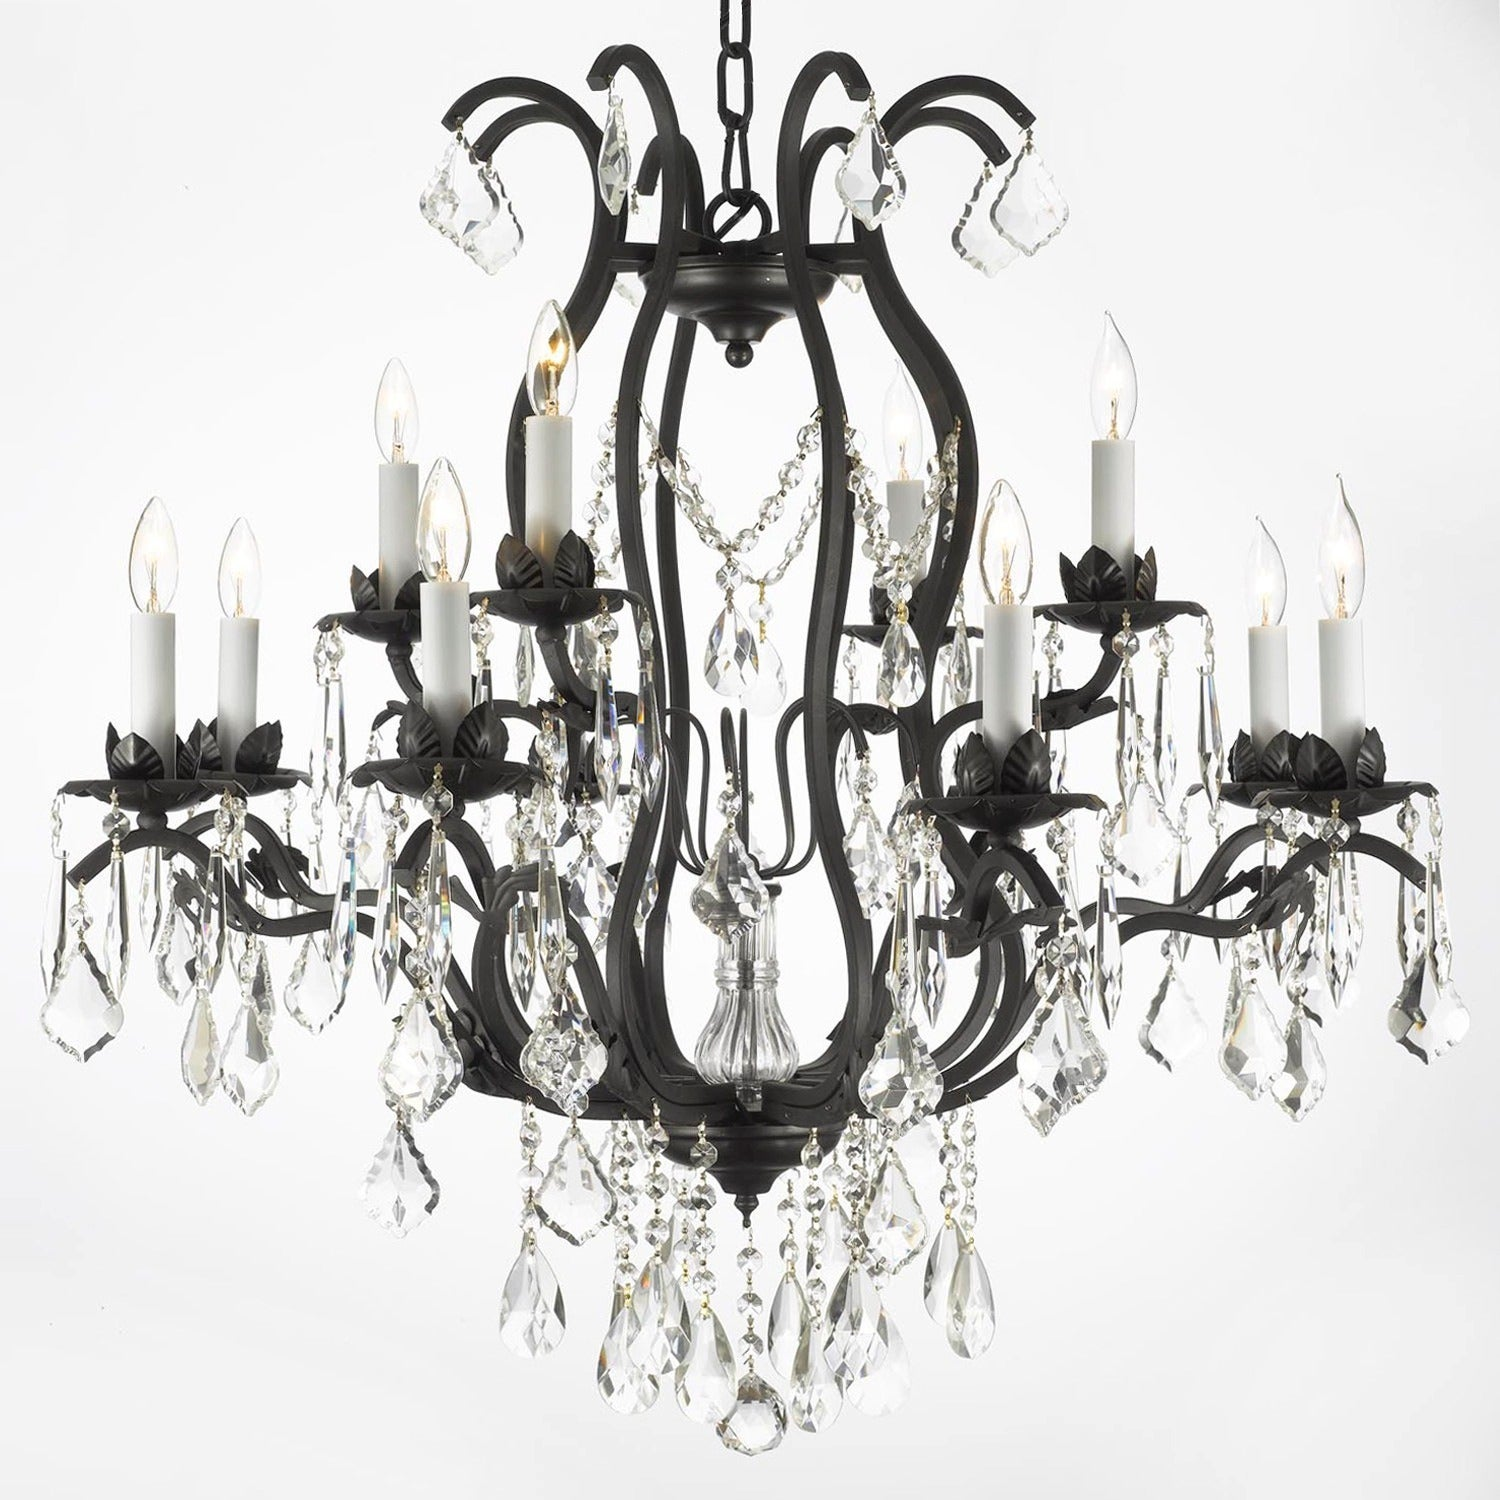 Shop Gallery Regent Iron 12 Light Chandelier Free Shipping Today Wiring Problems Download Diagrams Pictures 5749885